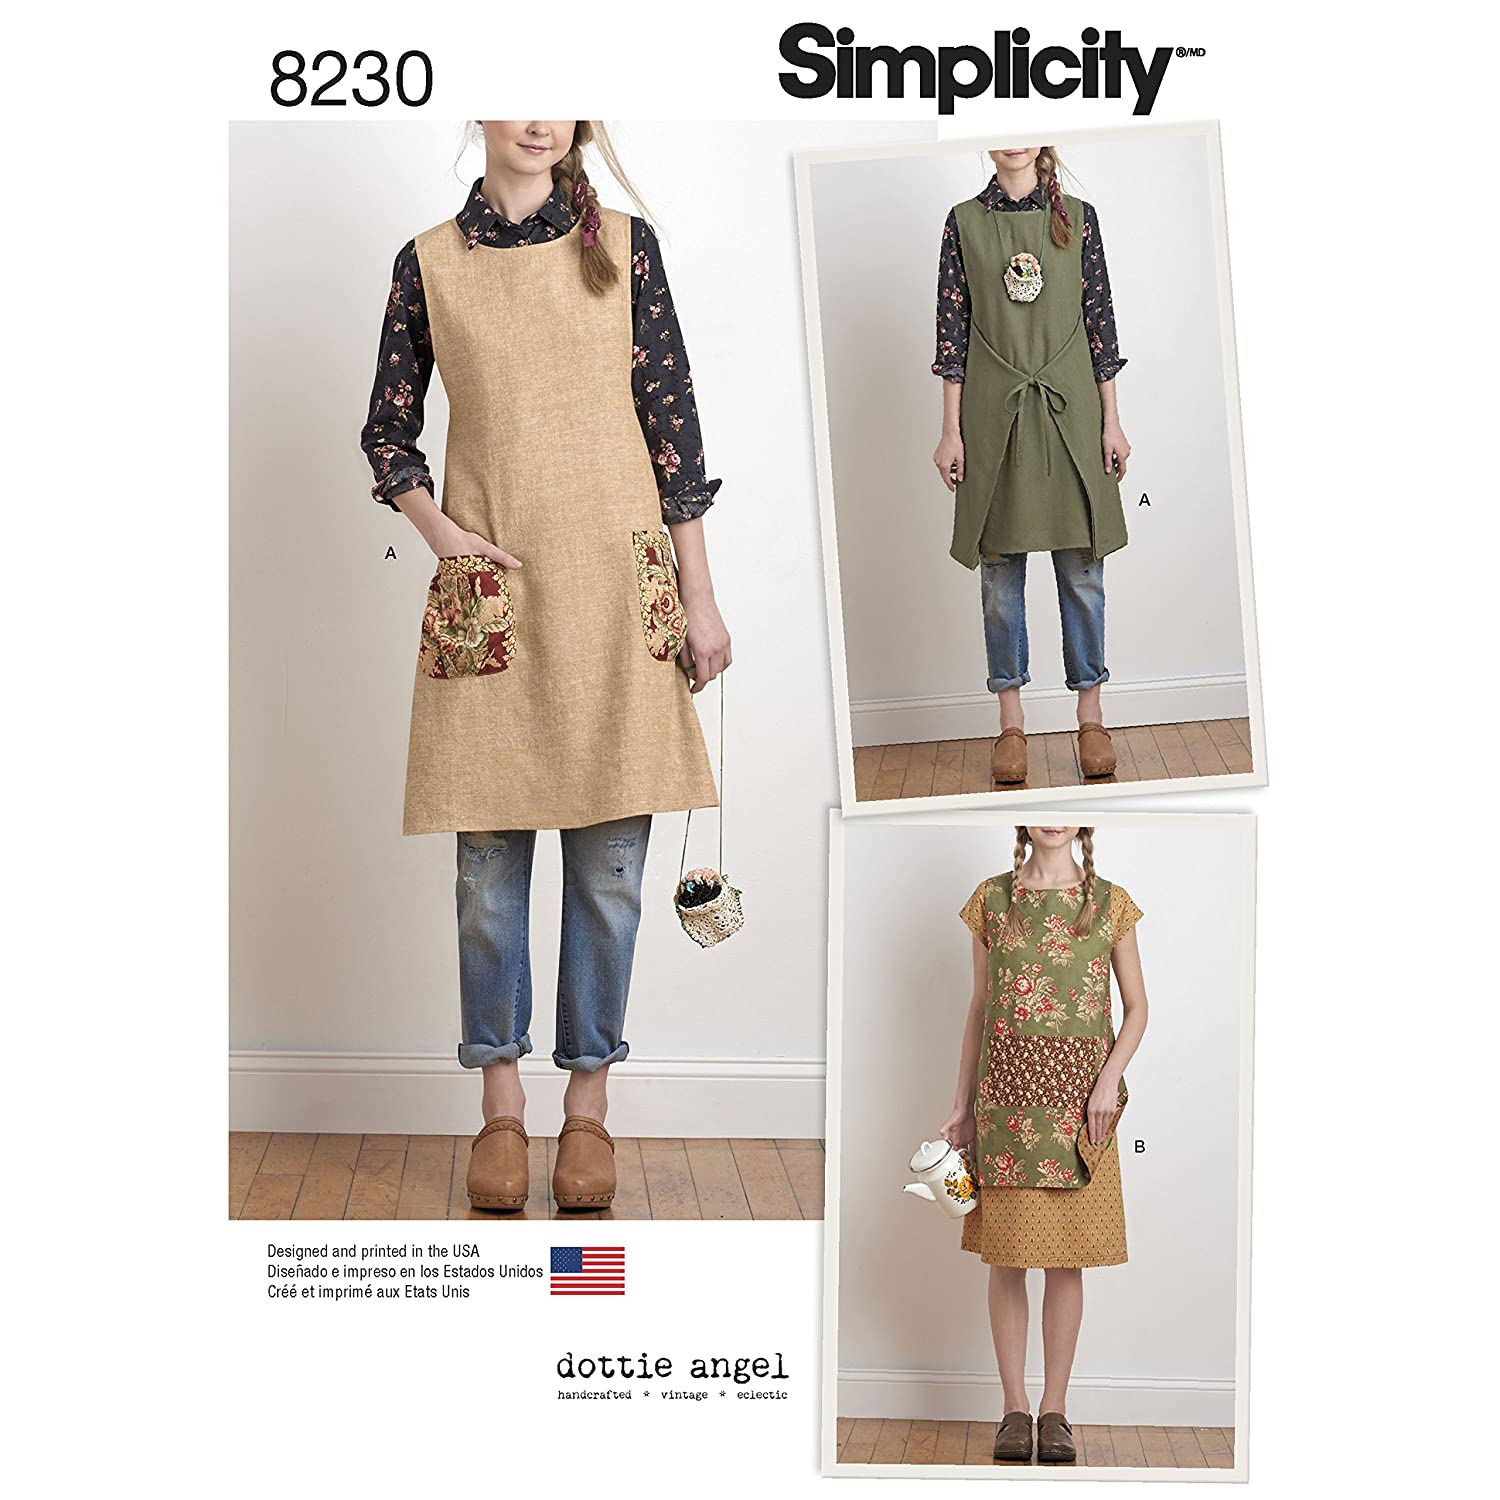 Simplicity Creative Patterns US8230A 8230 Simplicity Pattern 8230 Misses' Dottie Angel Reversible Apron Dress & Tabard OUTLOOK GROUP CORP